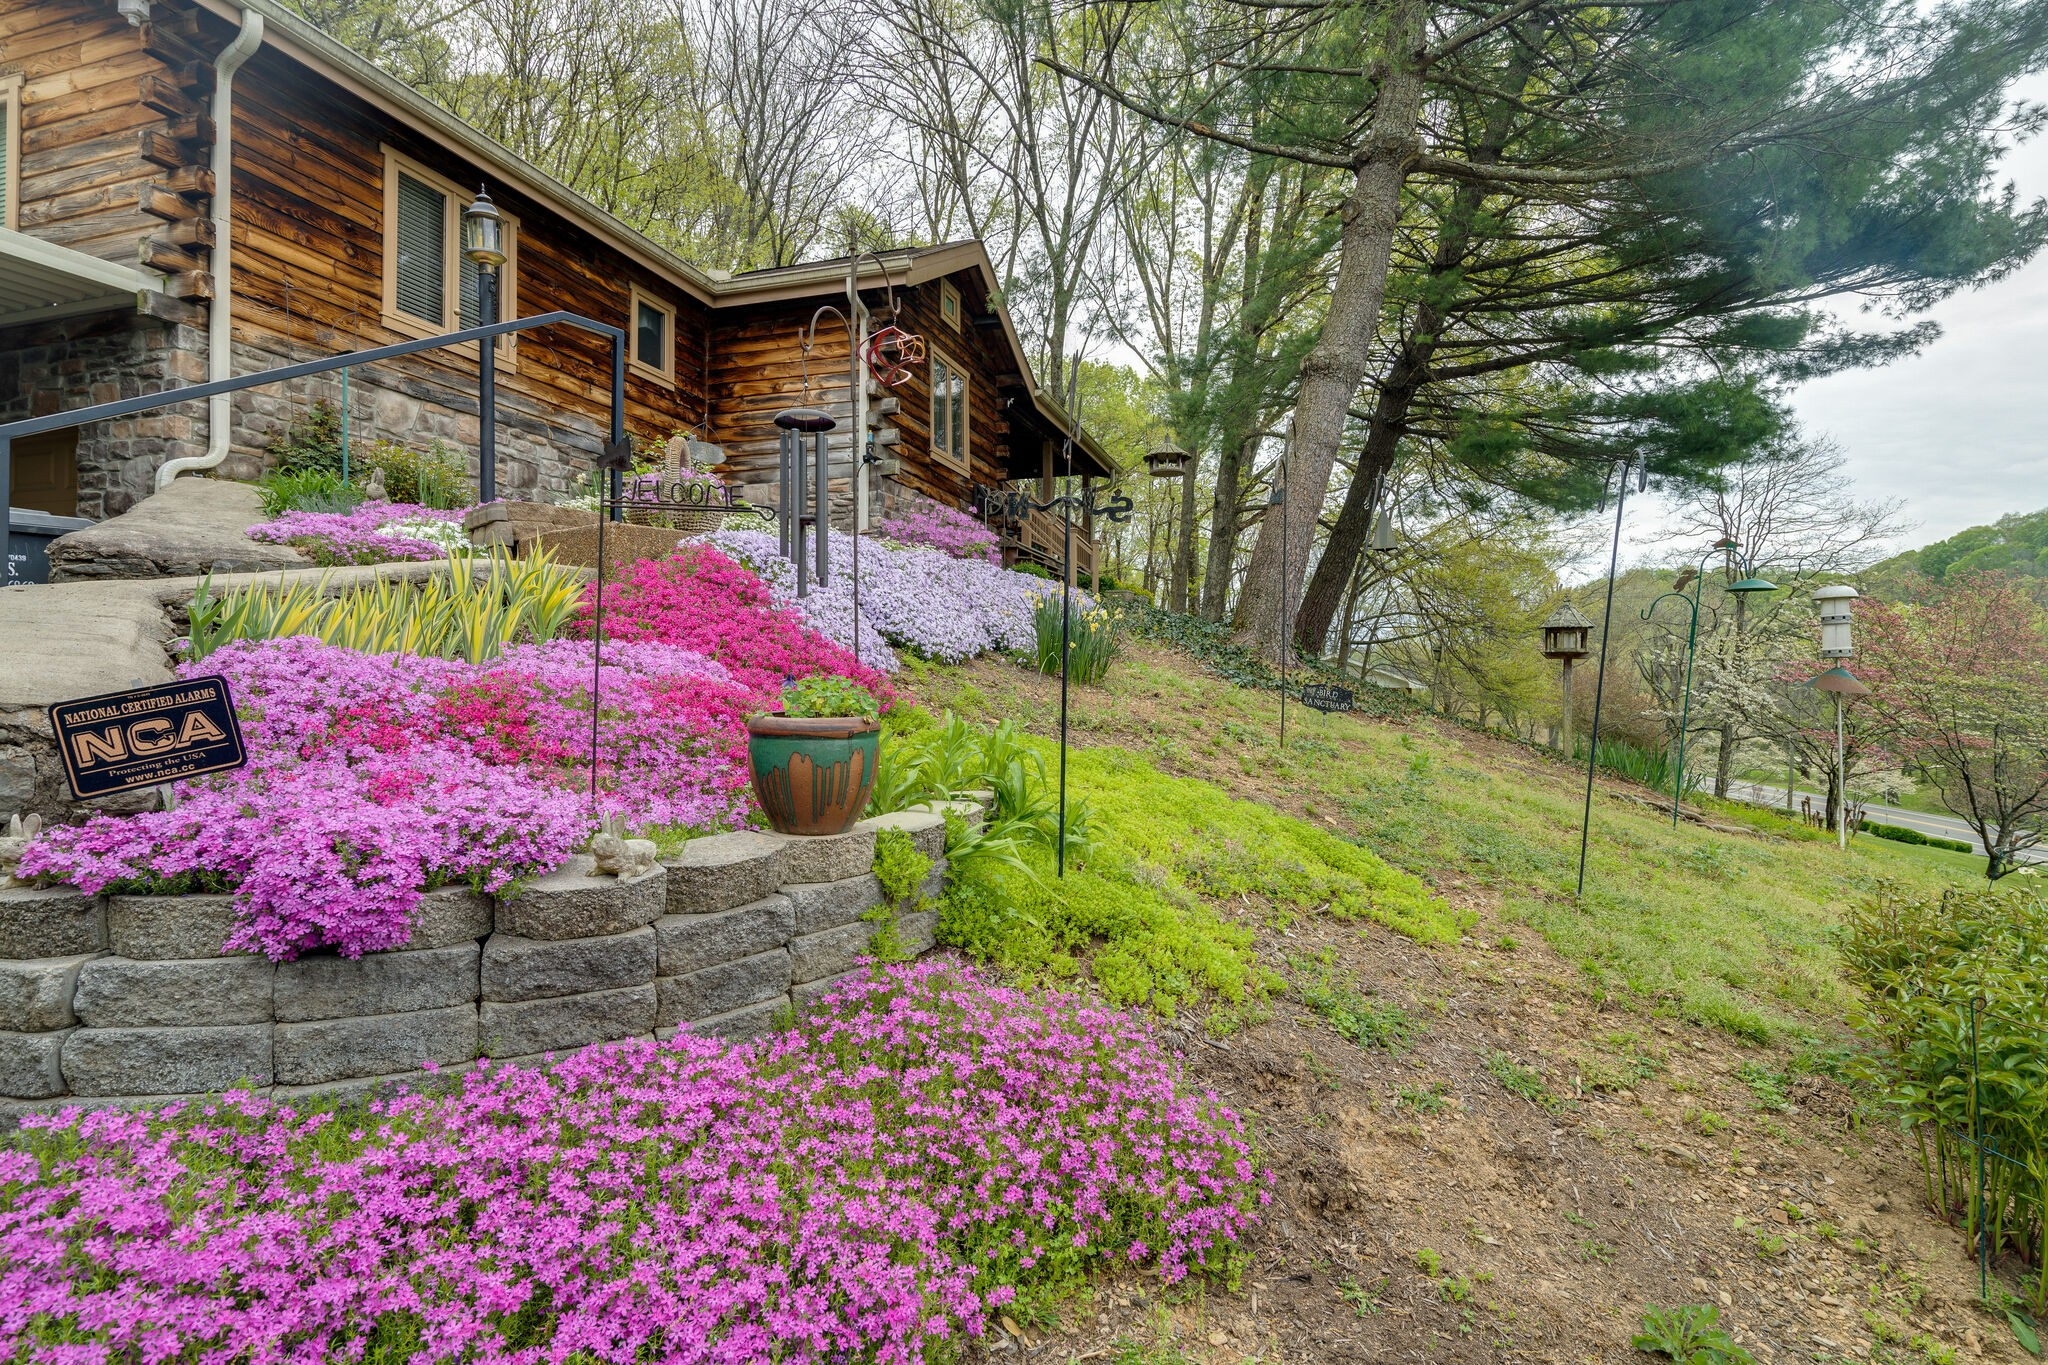 4970 Clarksville Hwy Property Photo - Whites Creek, TN real estate listing